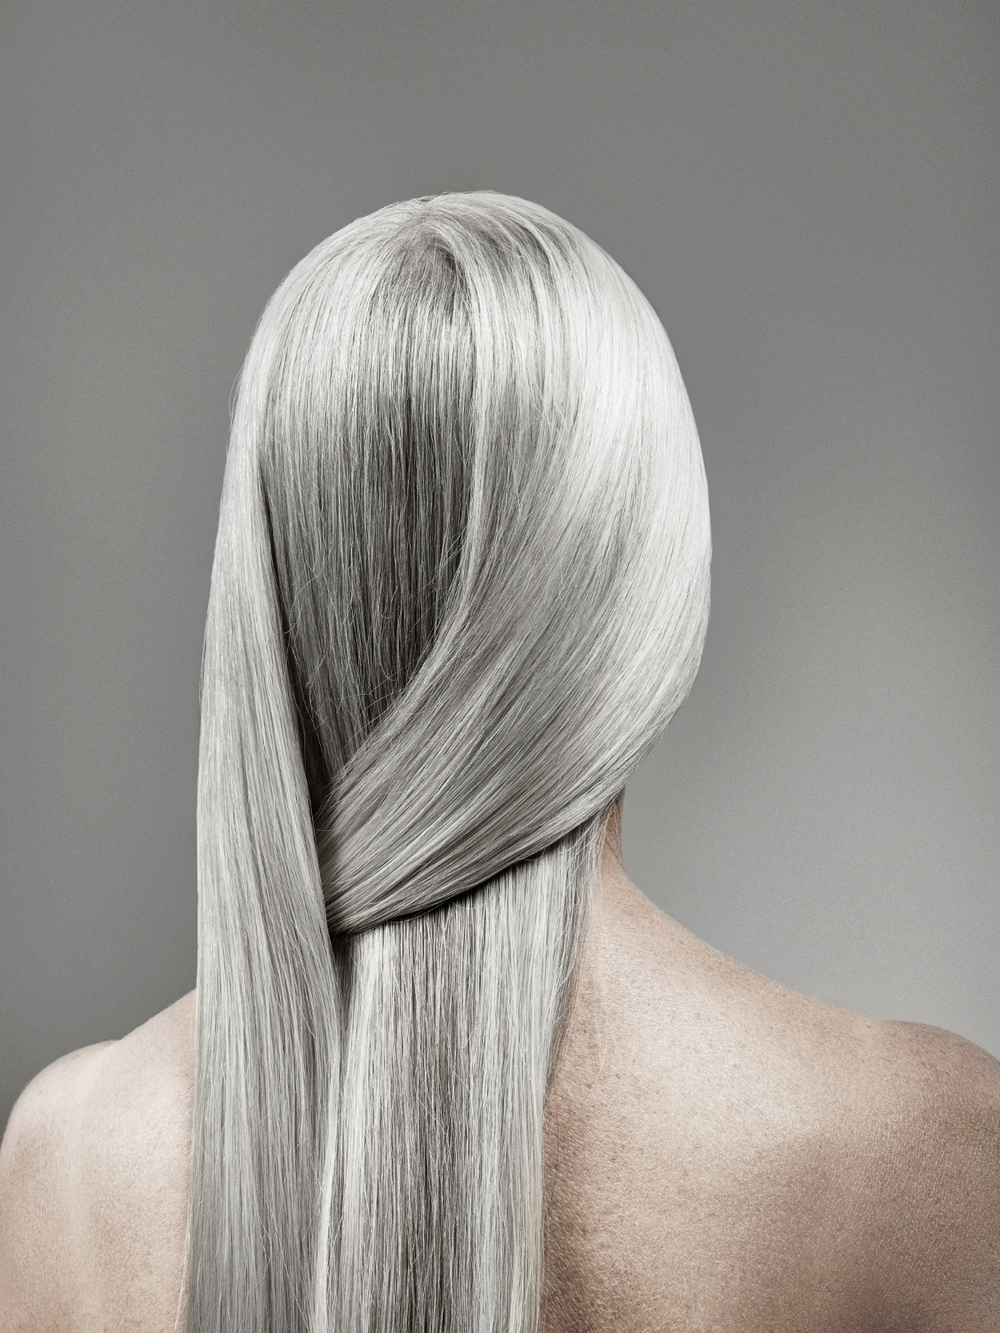 Silver hair shoot for Penseer fundcommission